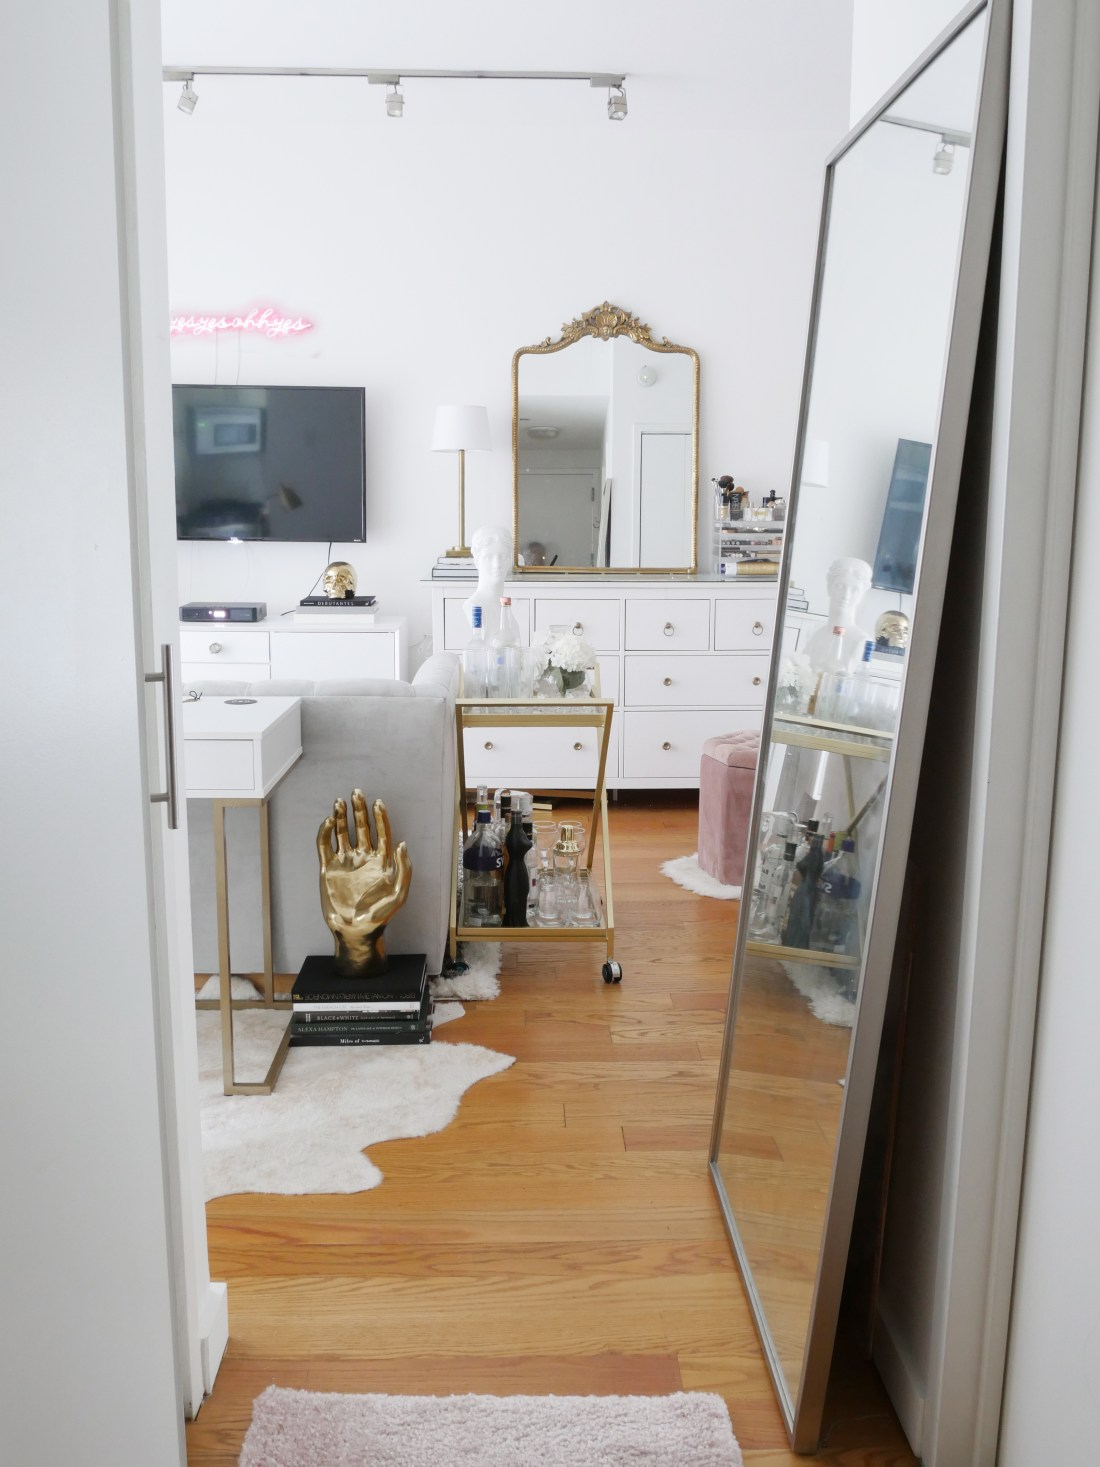 Live in a small apartment and don't know how to decorate it? Or on a tight budget and feel like you don't have the money to spend on new furniture? Well, you can finally erase those fears! Learn how to decorate turn a small space into a chic home WHILE staying on a budget! #studioapartmentideas #tinystudioapartmentideas #studioapartmentdecorating #decoratingonabudget #smallapartmentideas